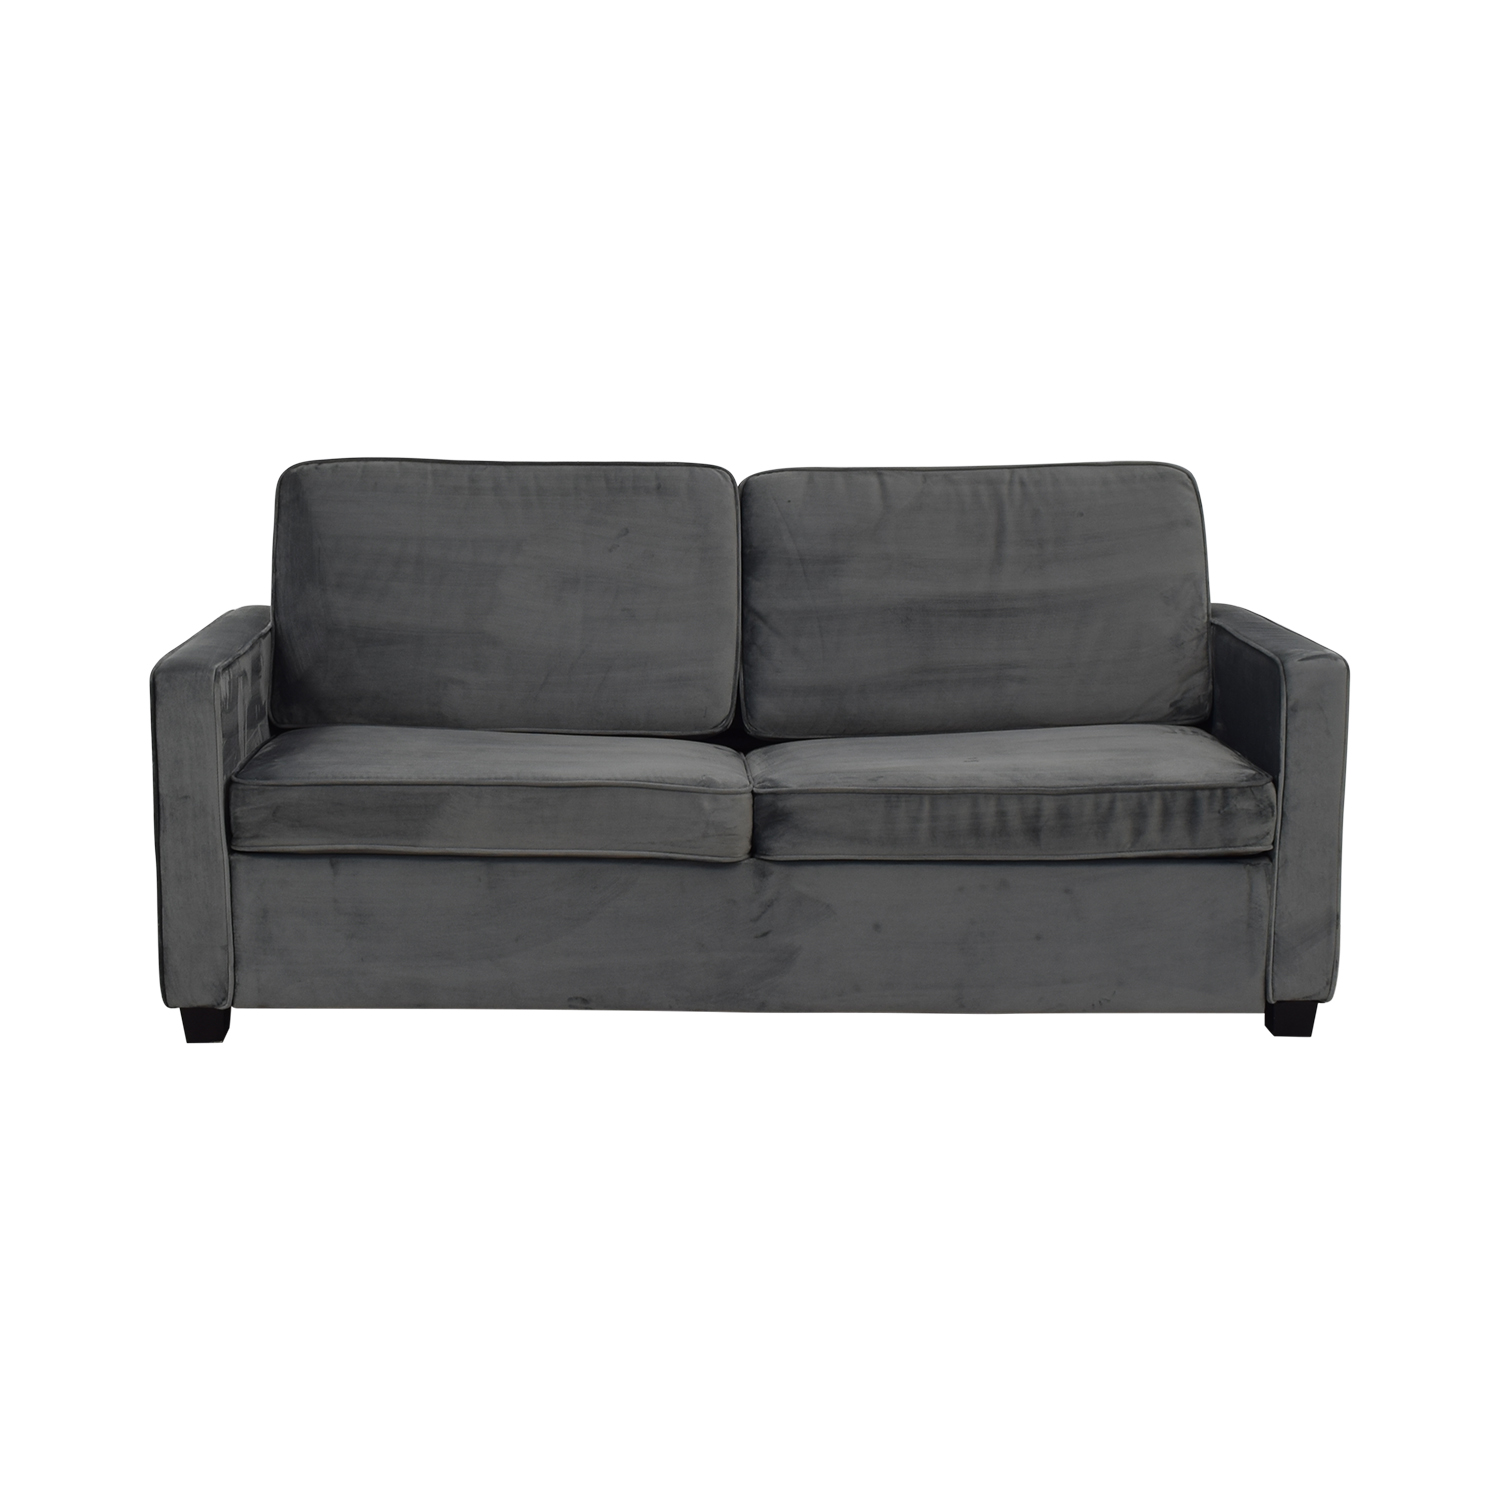 Mercury Row Mercury Row Queen Cabell Sleeper Sofa dimensions